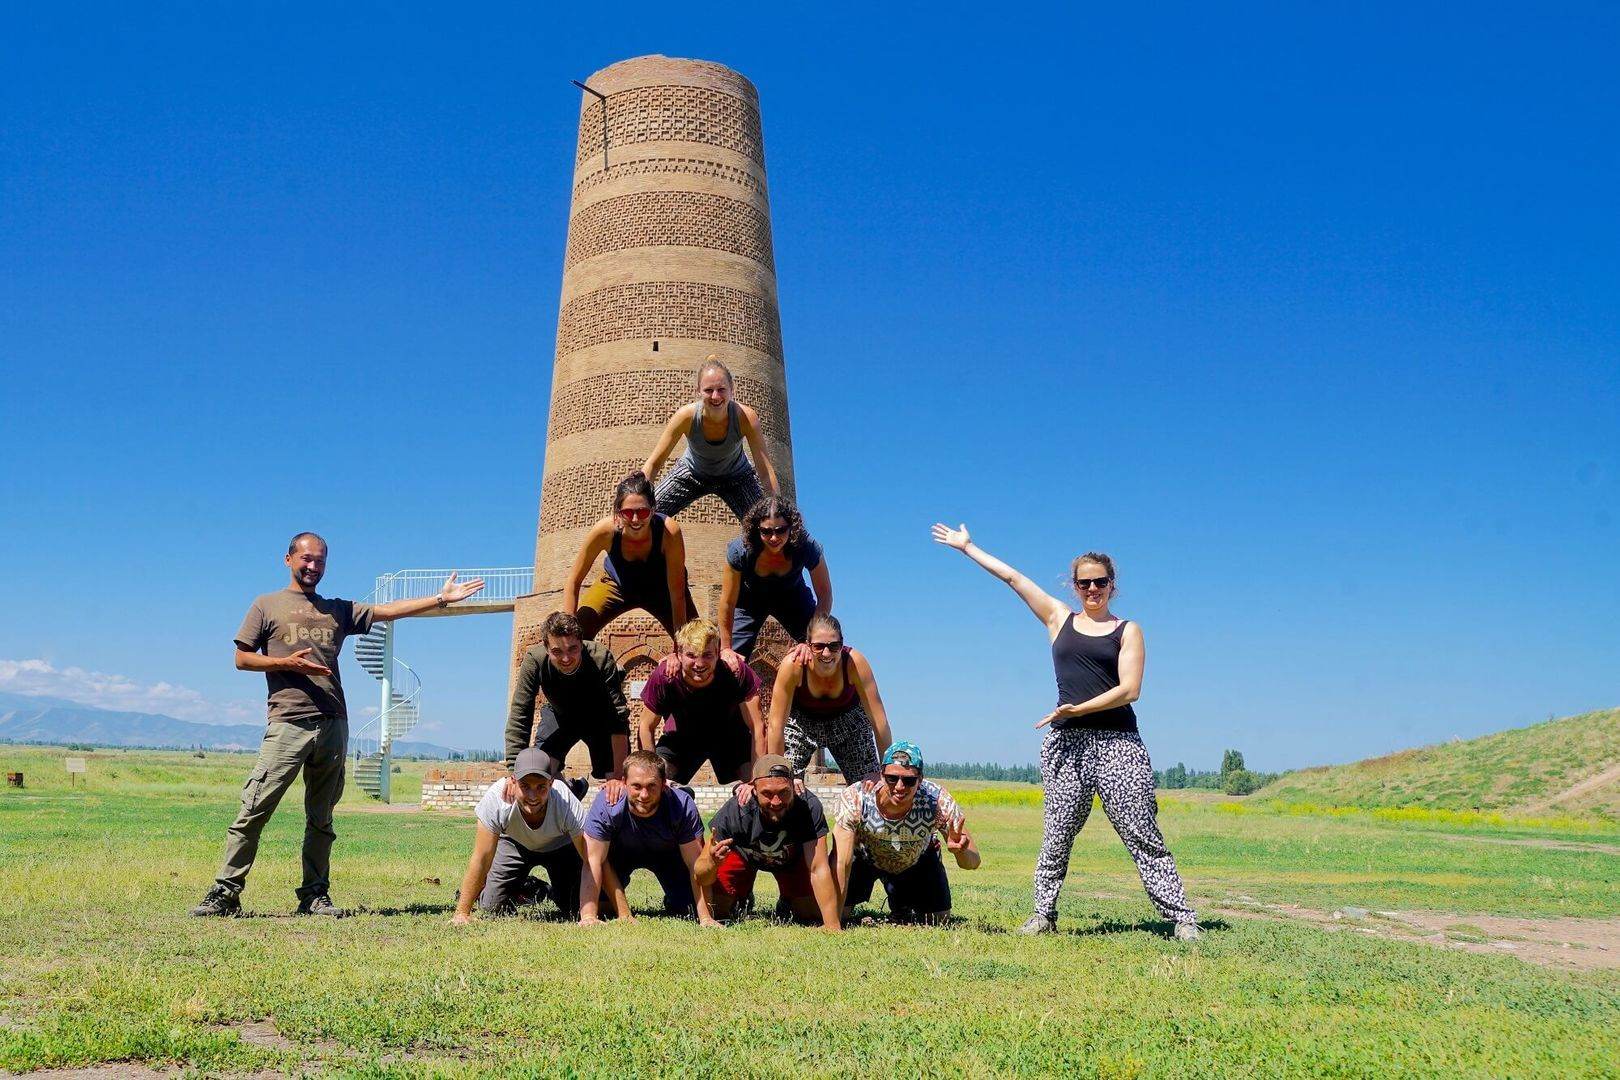 tourist group building a human pyramid in front of the Burana tower